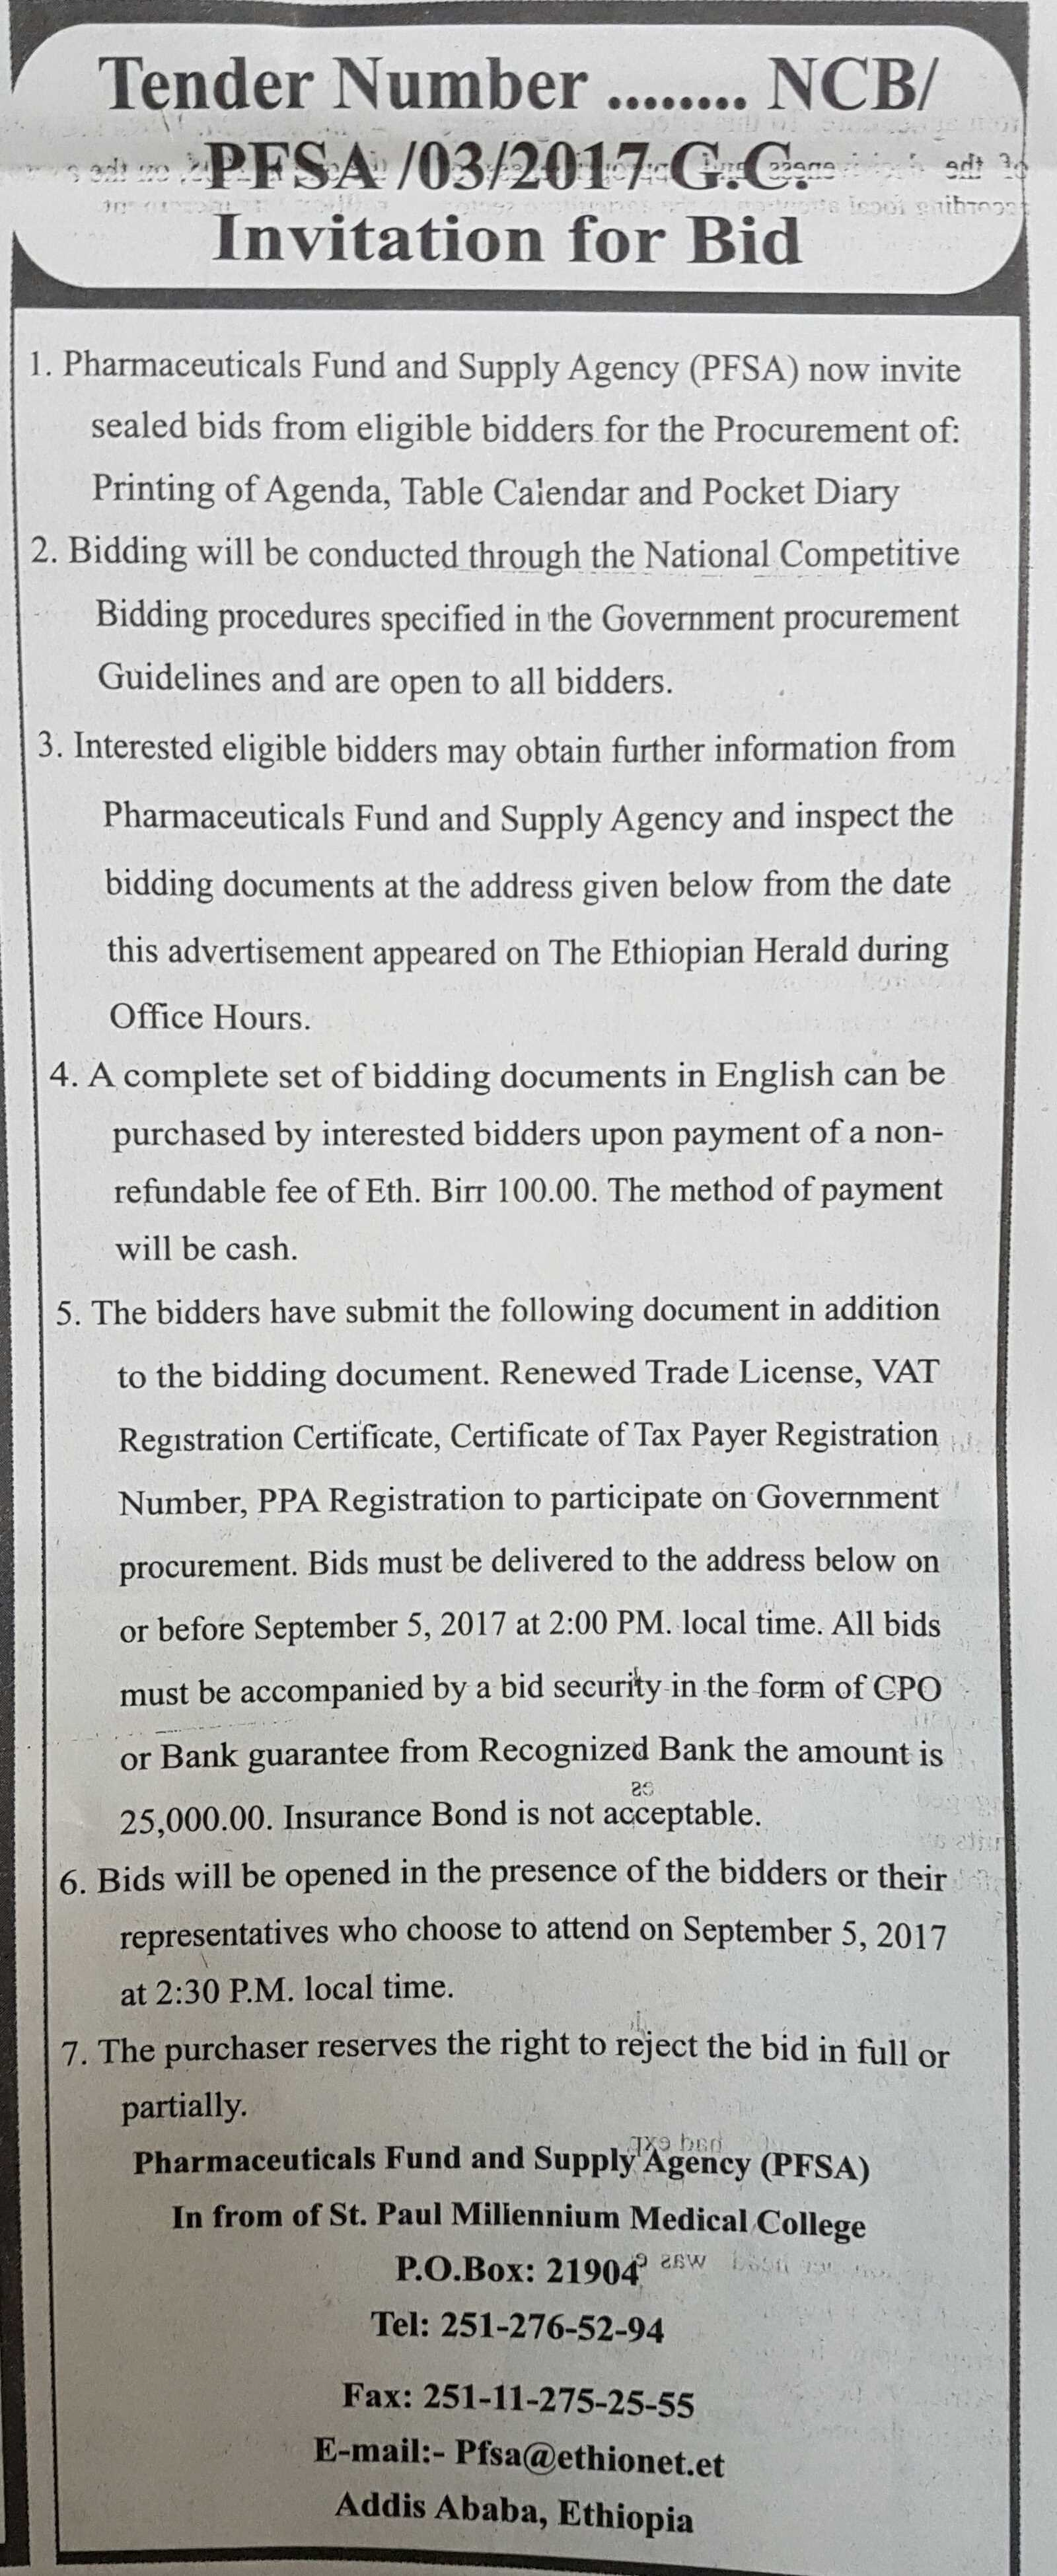 Shemssu :: Pharmaceutical fund and supply agency (PFSA) in form of